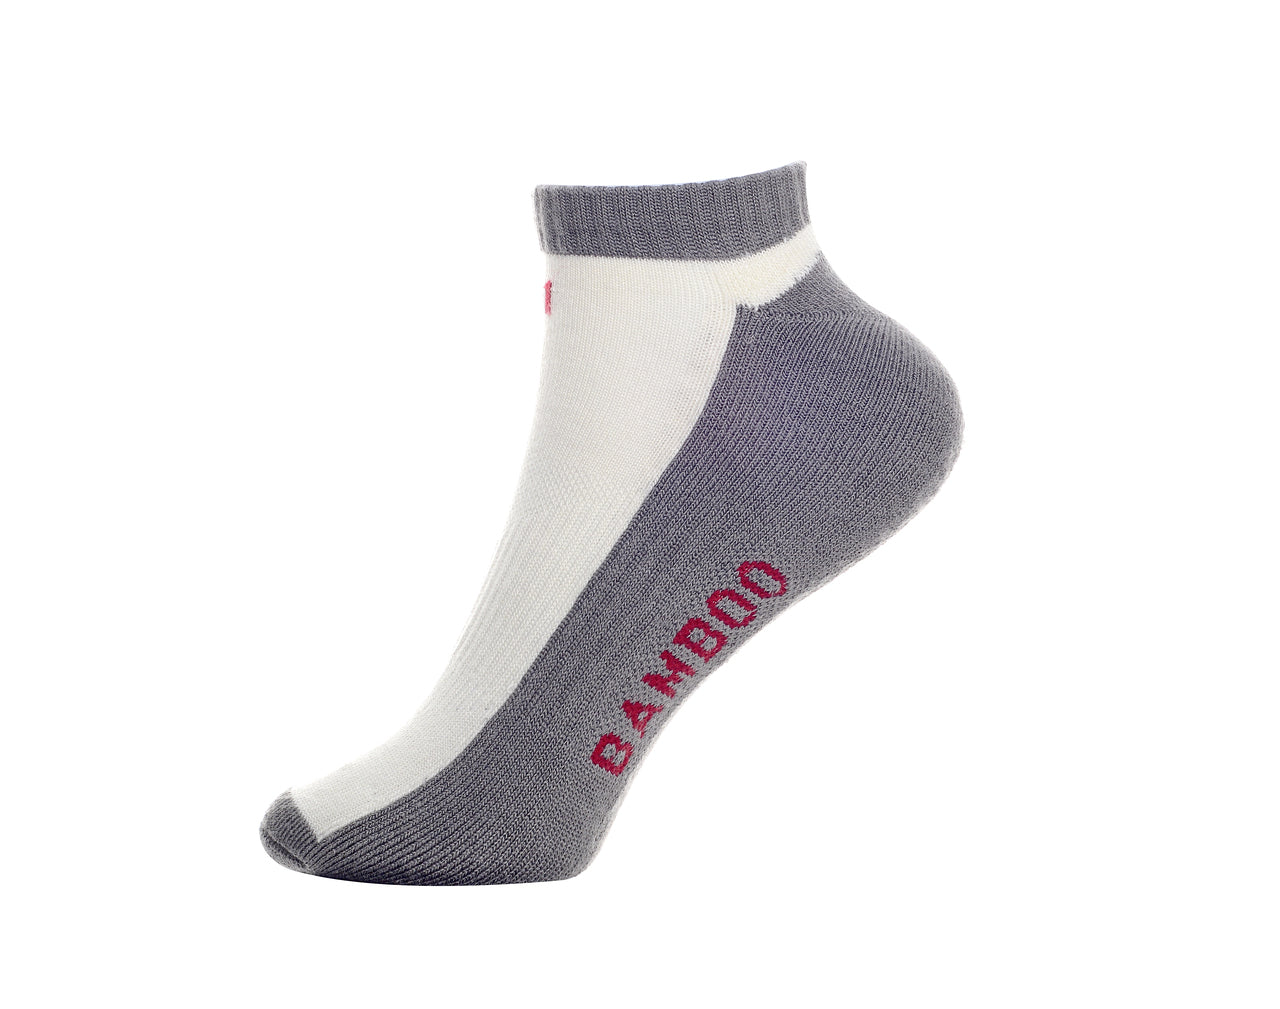 Bamboo ankle socks in a thick winter size